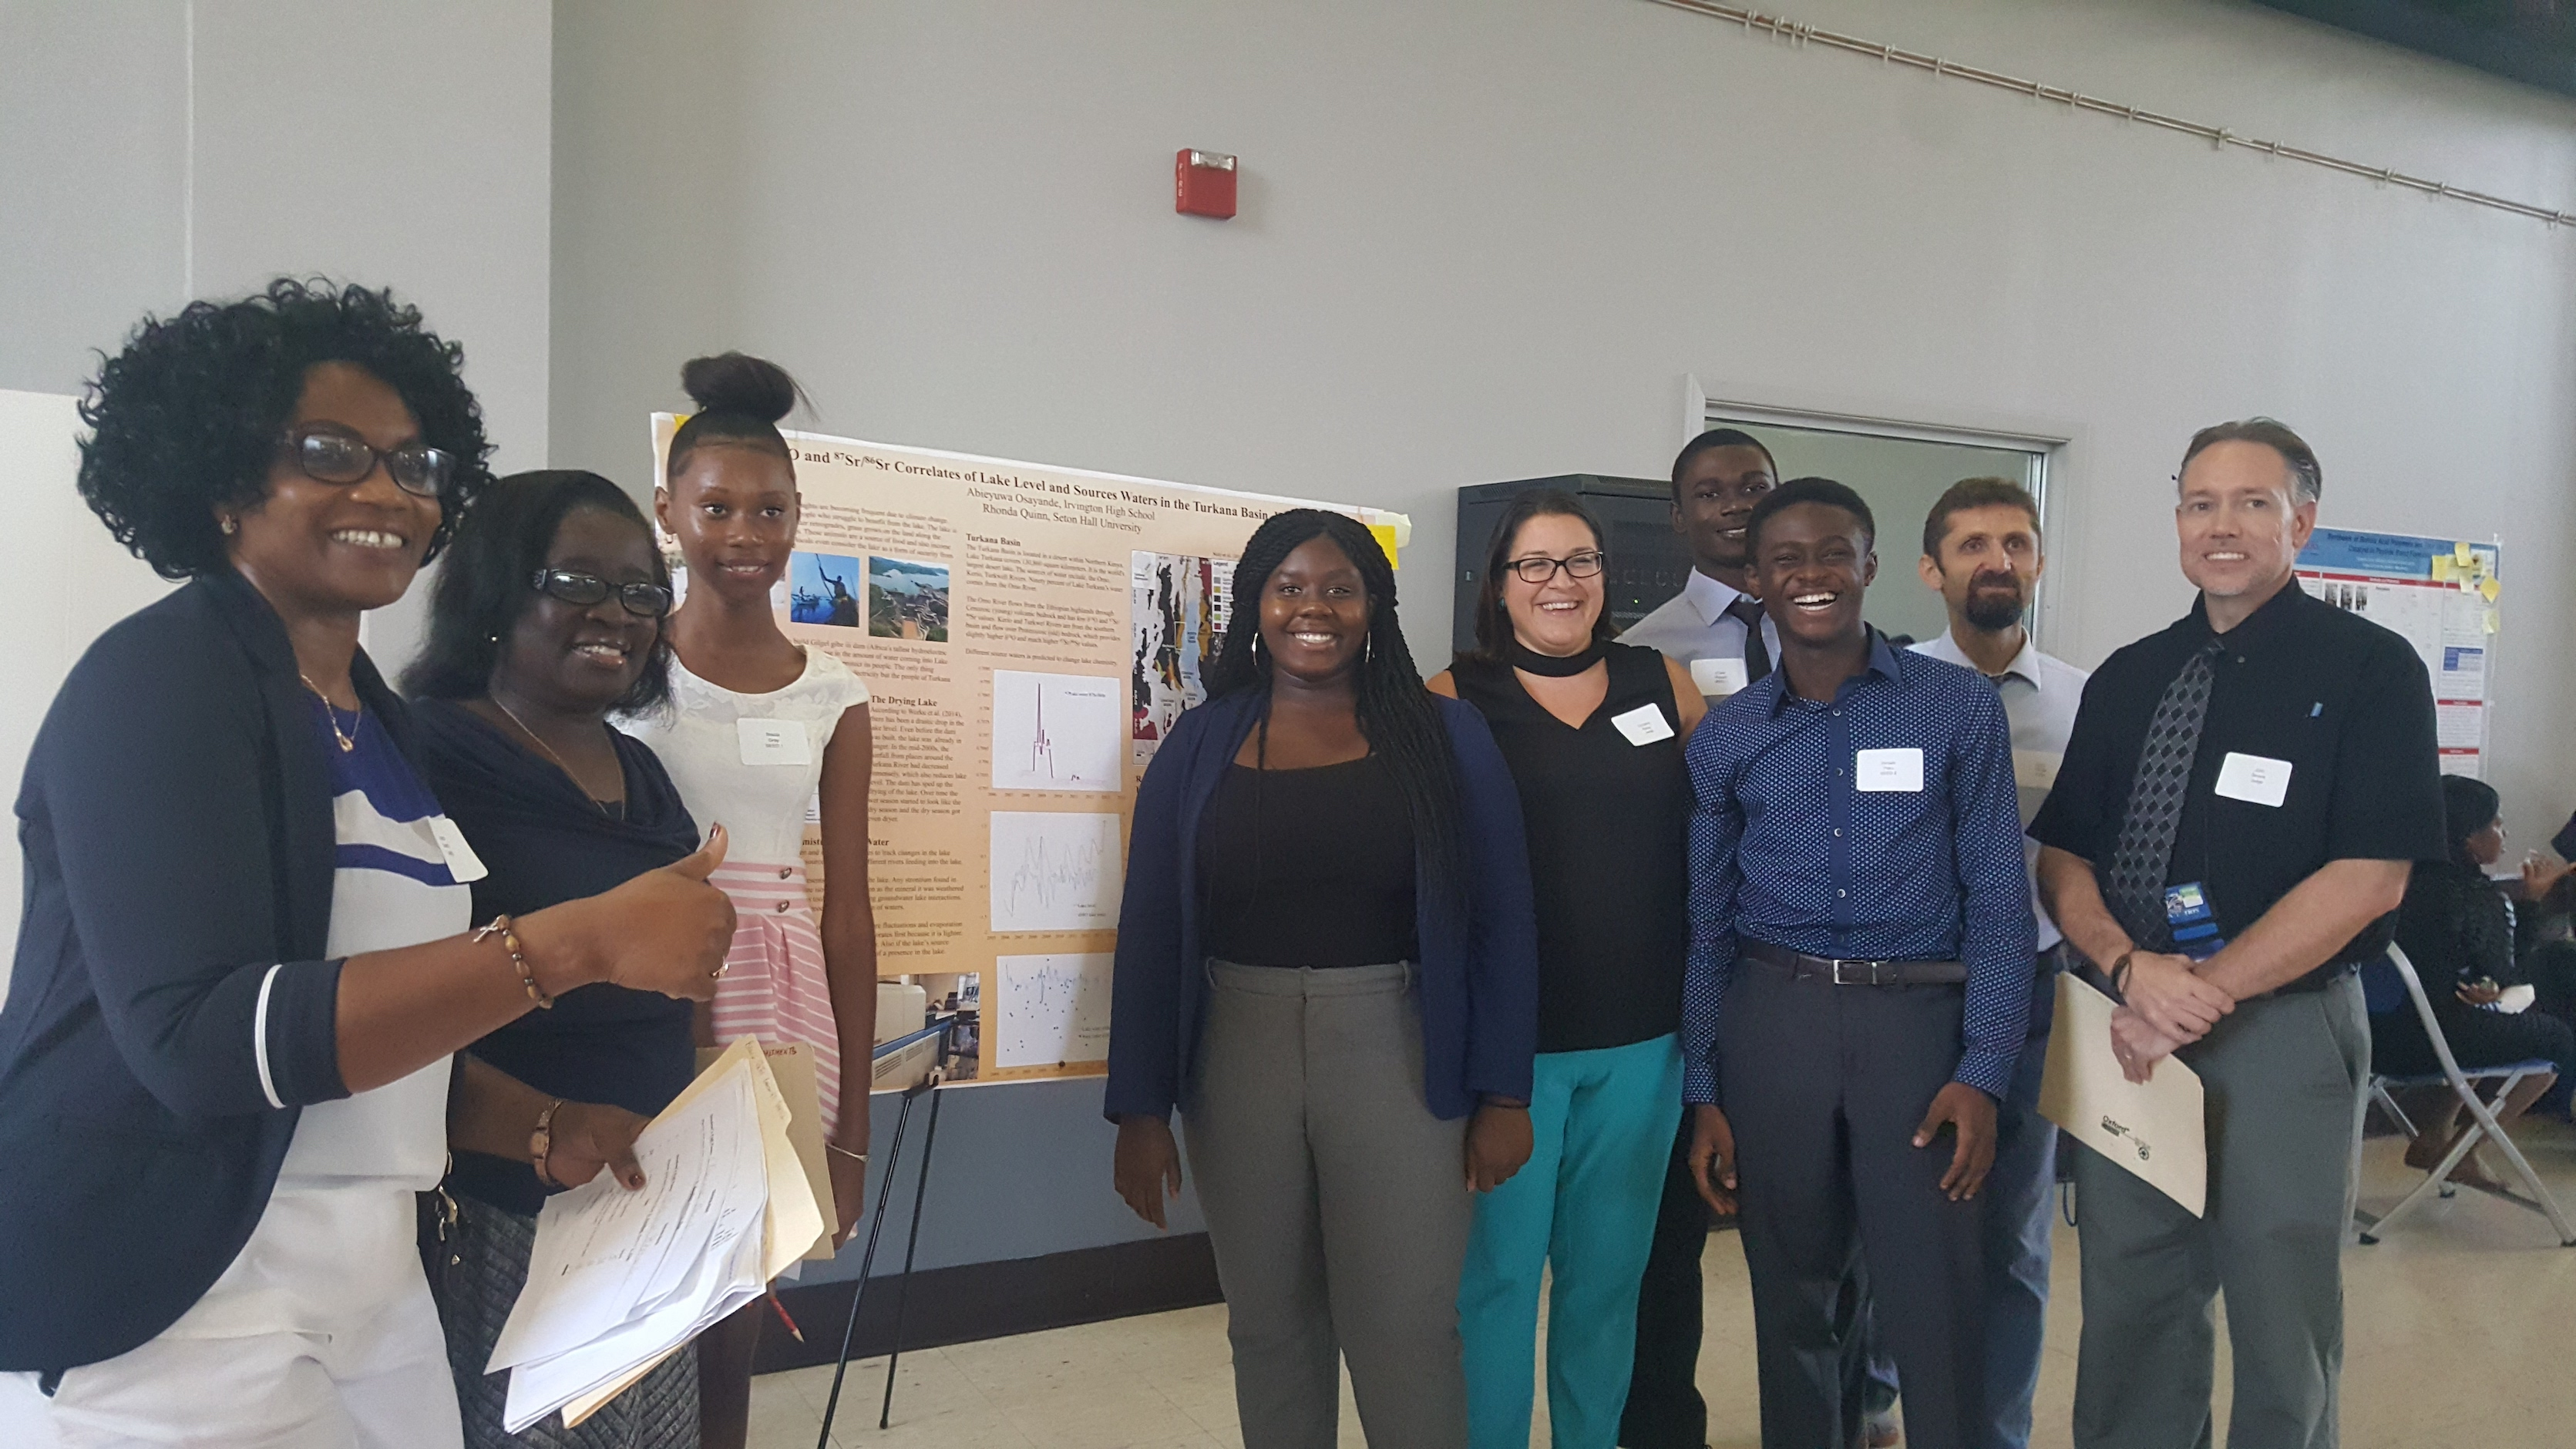 (from left) Adaeze Ihuoma (teacher and judge), Theresa Bennin (IHS coordinator and judge), Stacy Gray, Abieyuwa Osayande, Christina Rishiy (teacher and judge), Frank Peprah, Hiroshi Onyinah, Erdal Yilmaz (teacher and judge), John Severs (supervisor and judge)